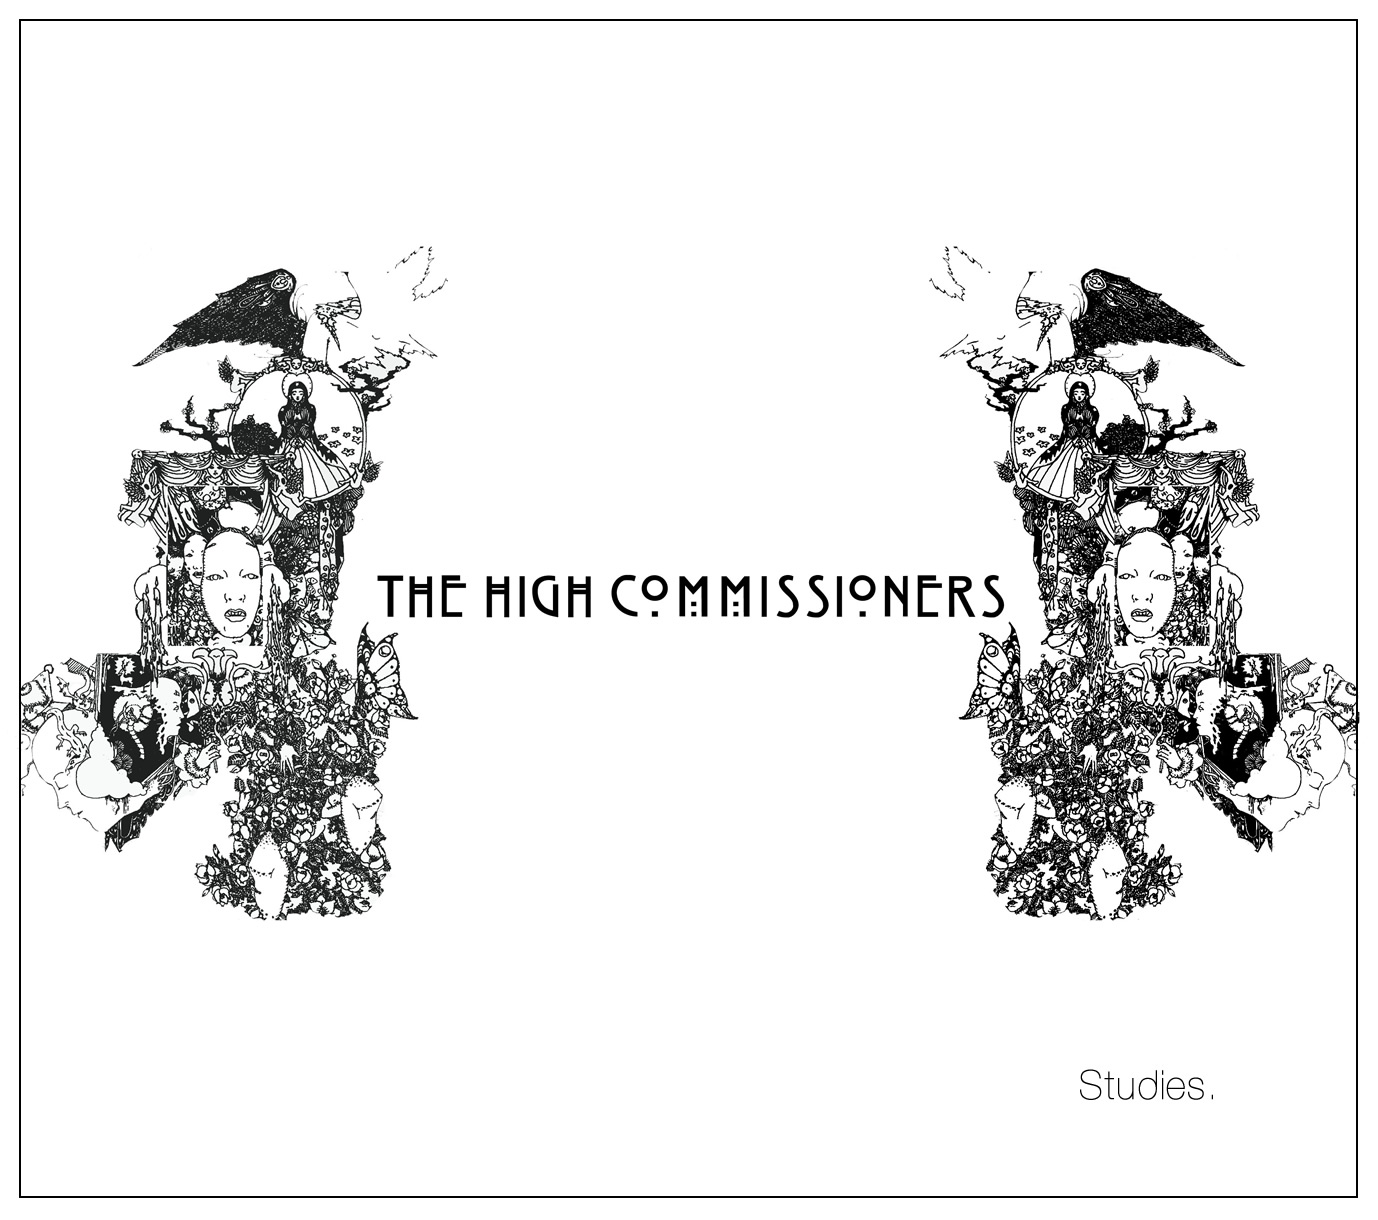 The High Commissioners